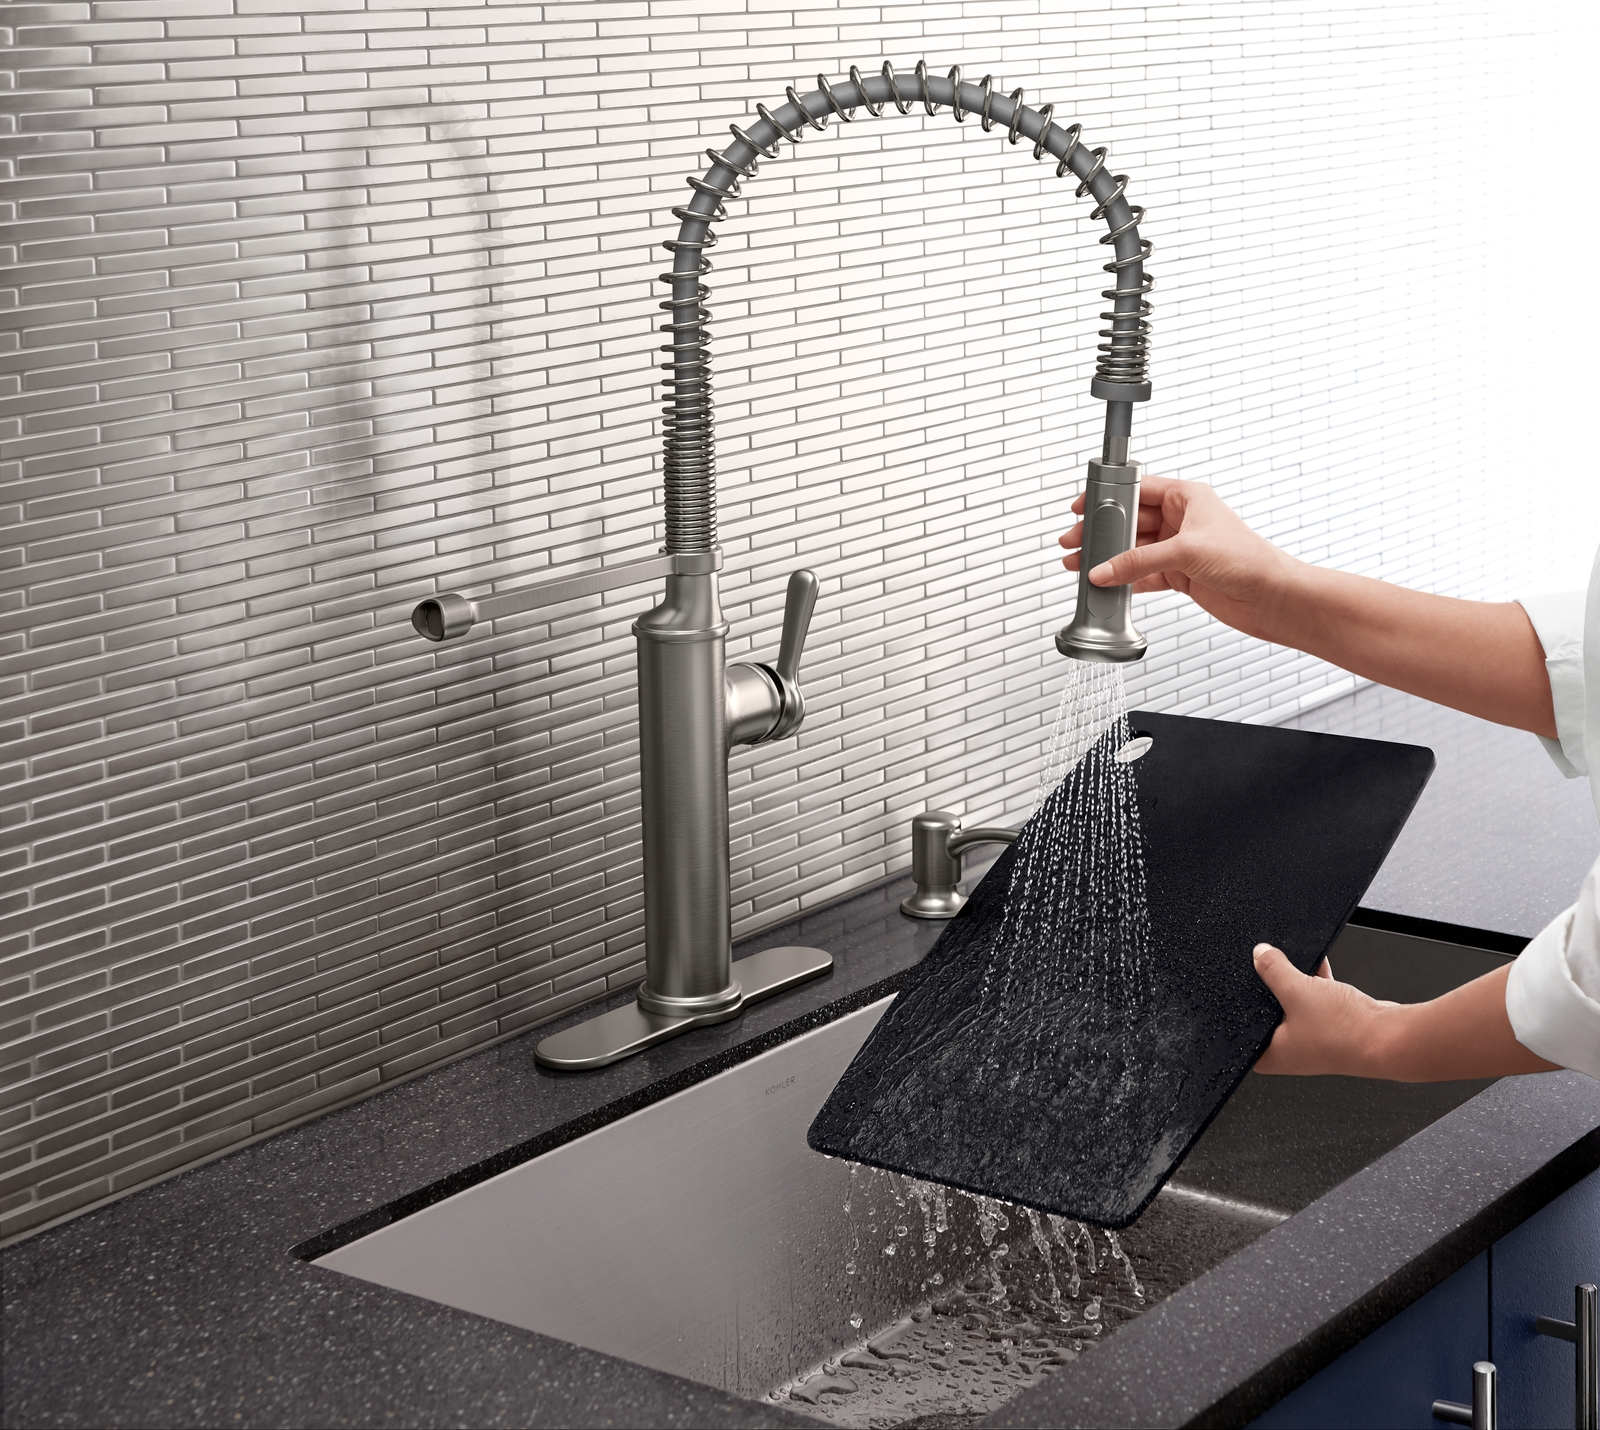 farmhouse kitchen faucet farmhouse faucet kitchen Look at this gorgeous farmhouse kitchen faucet by Kohler